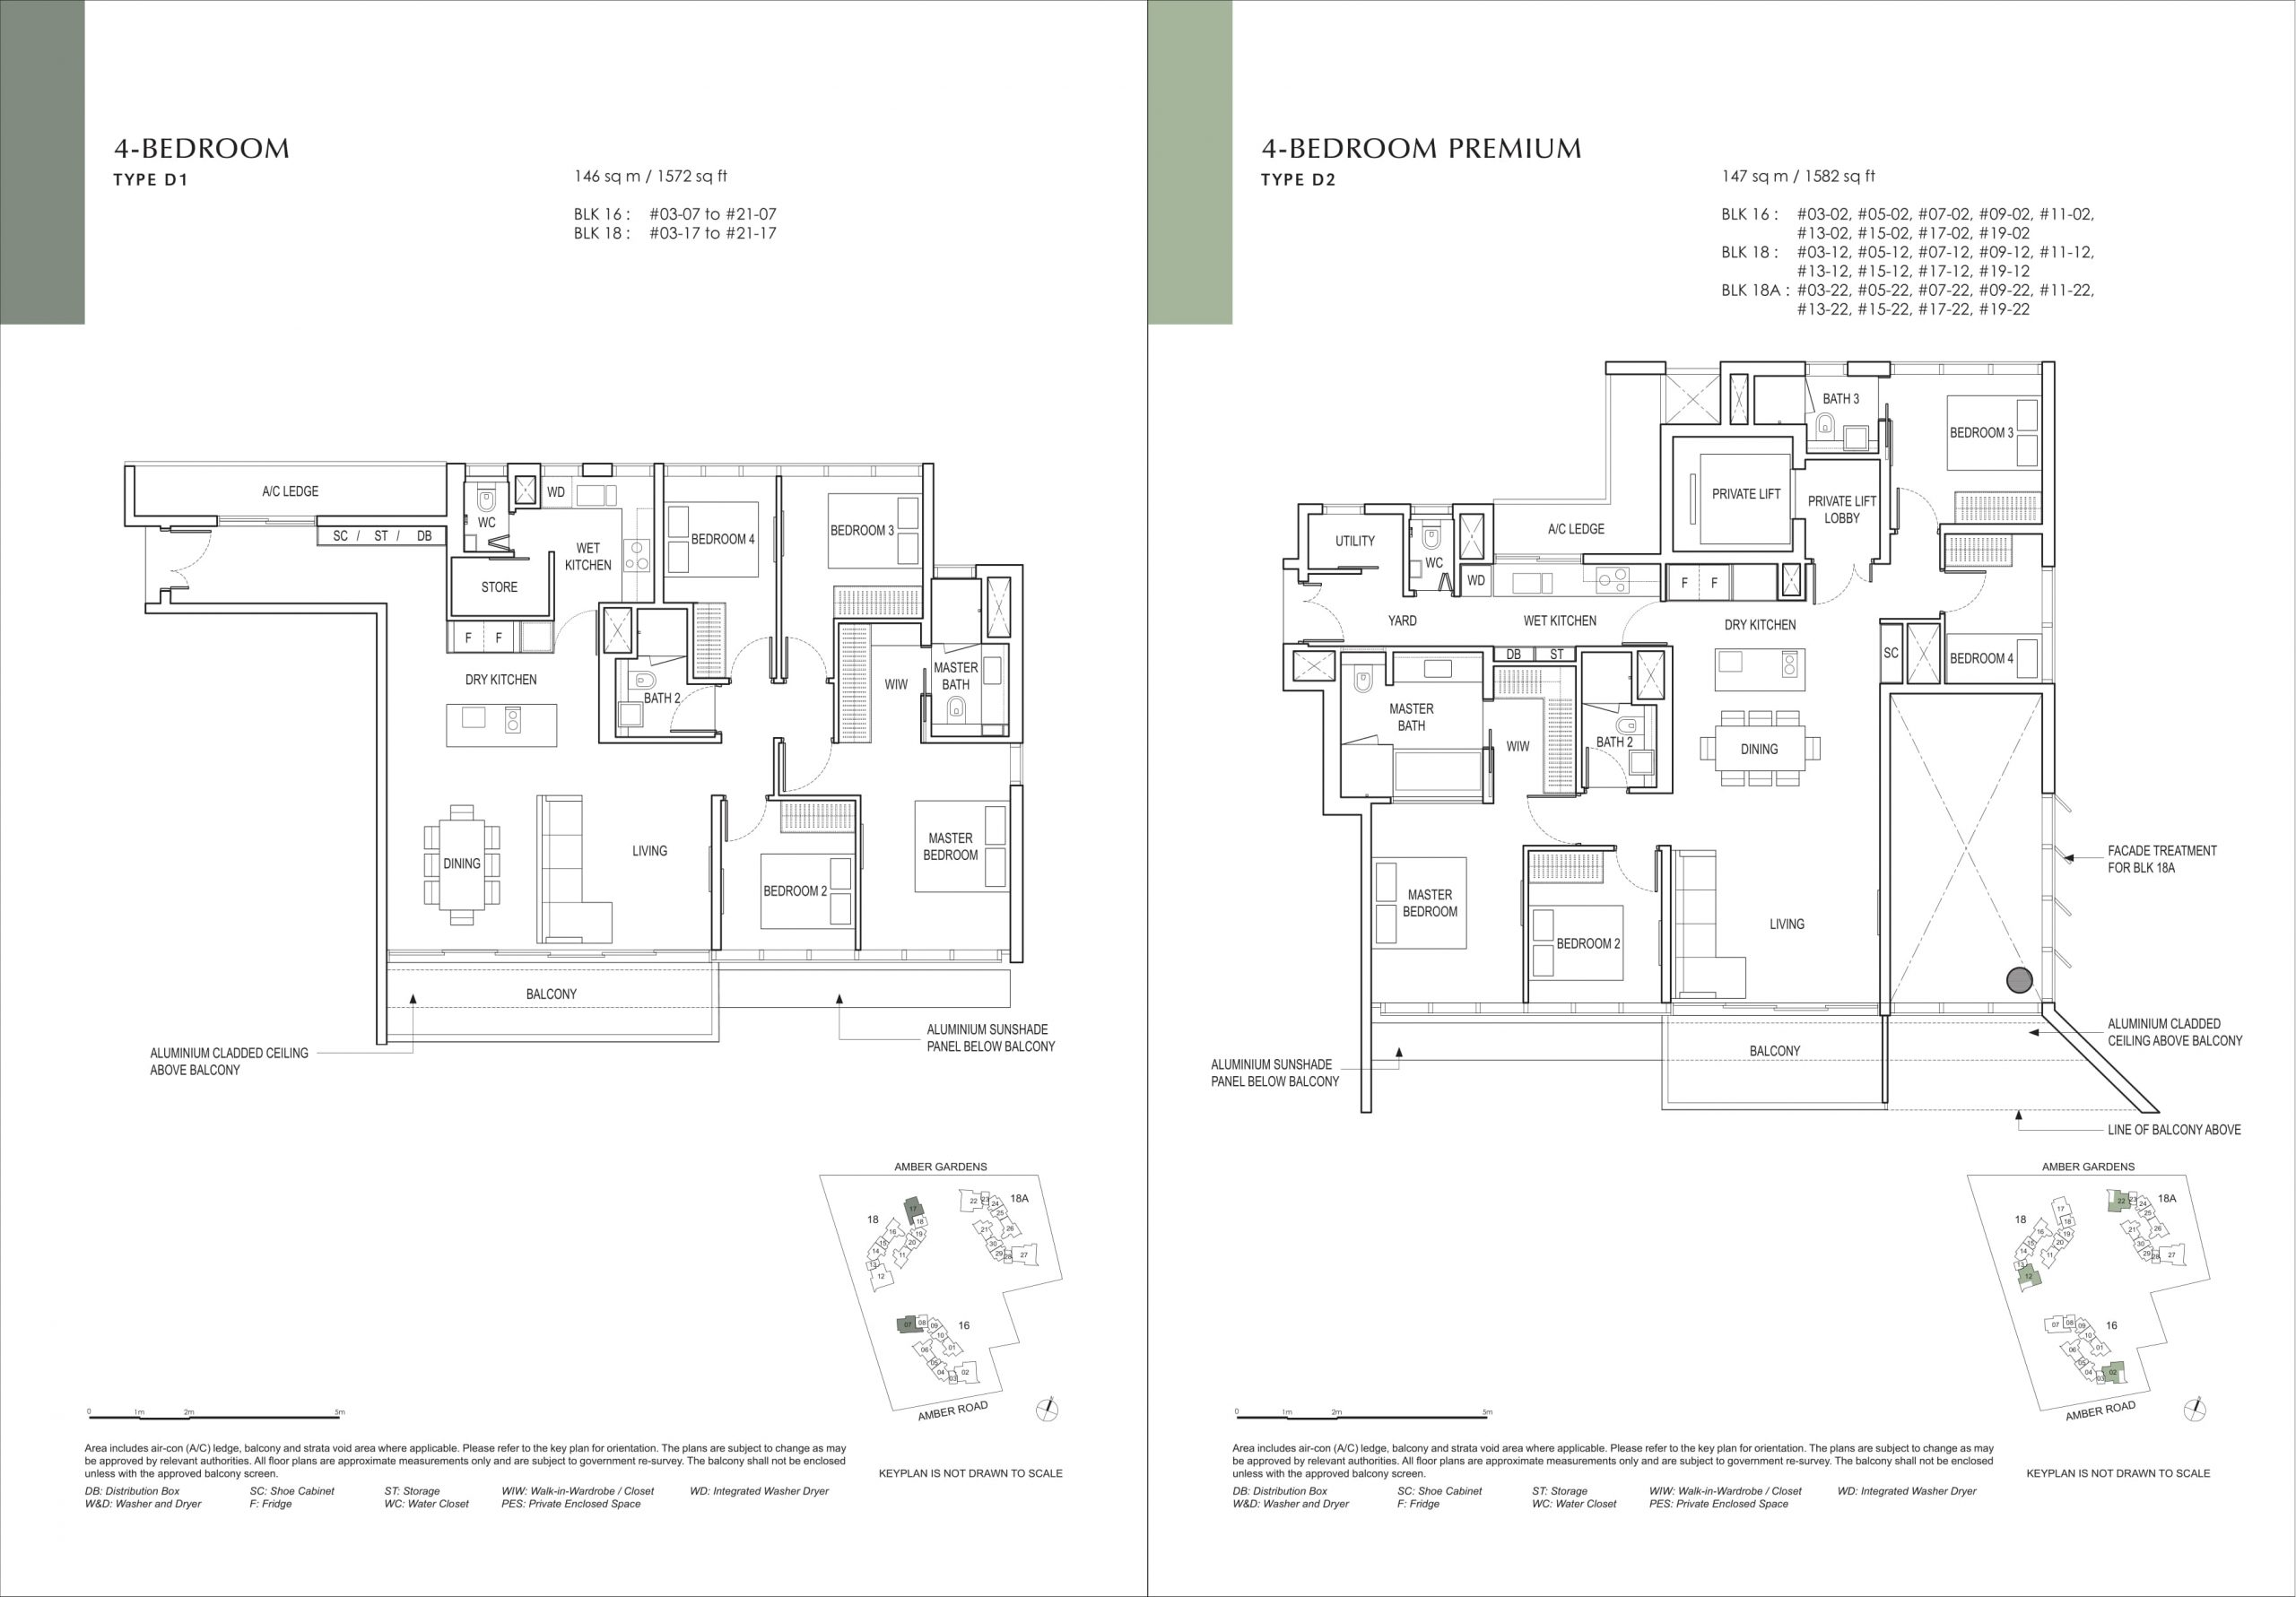 Amber Park's four-bedroom types